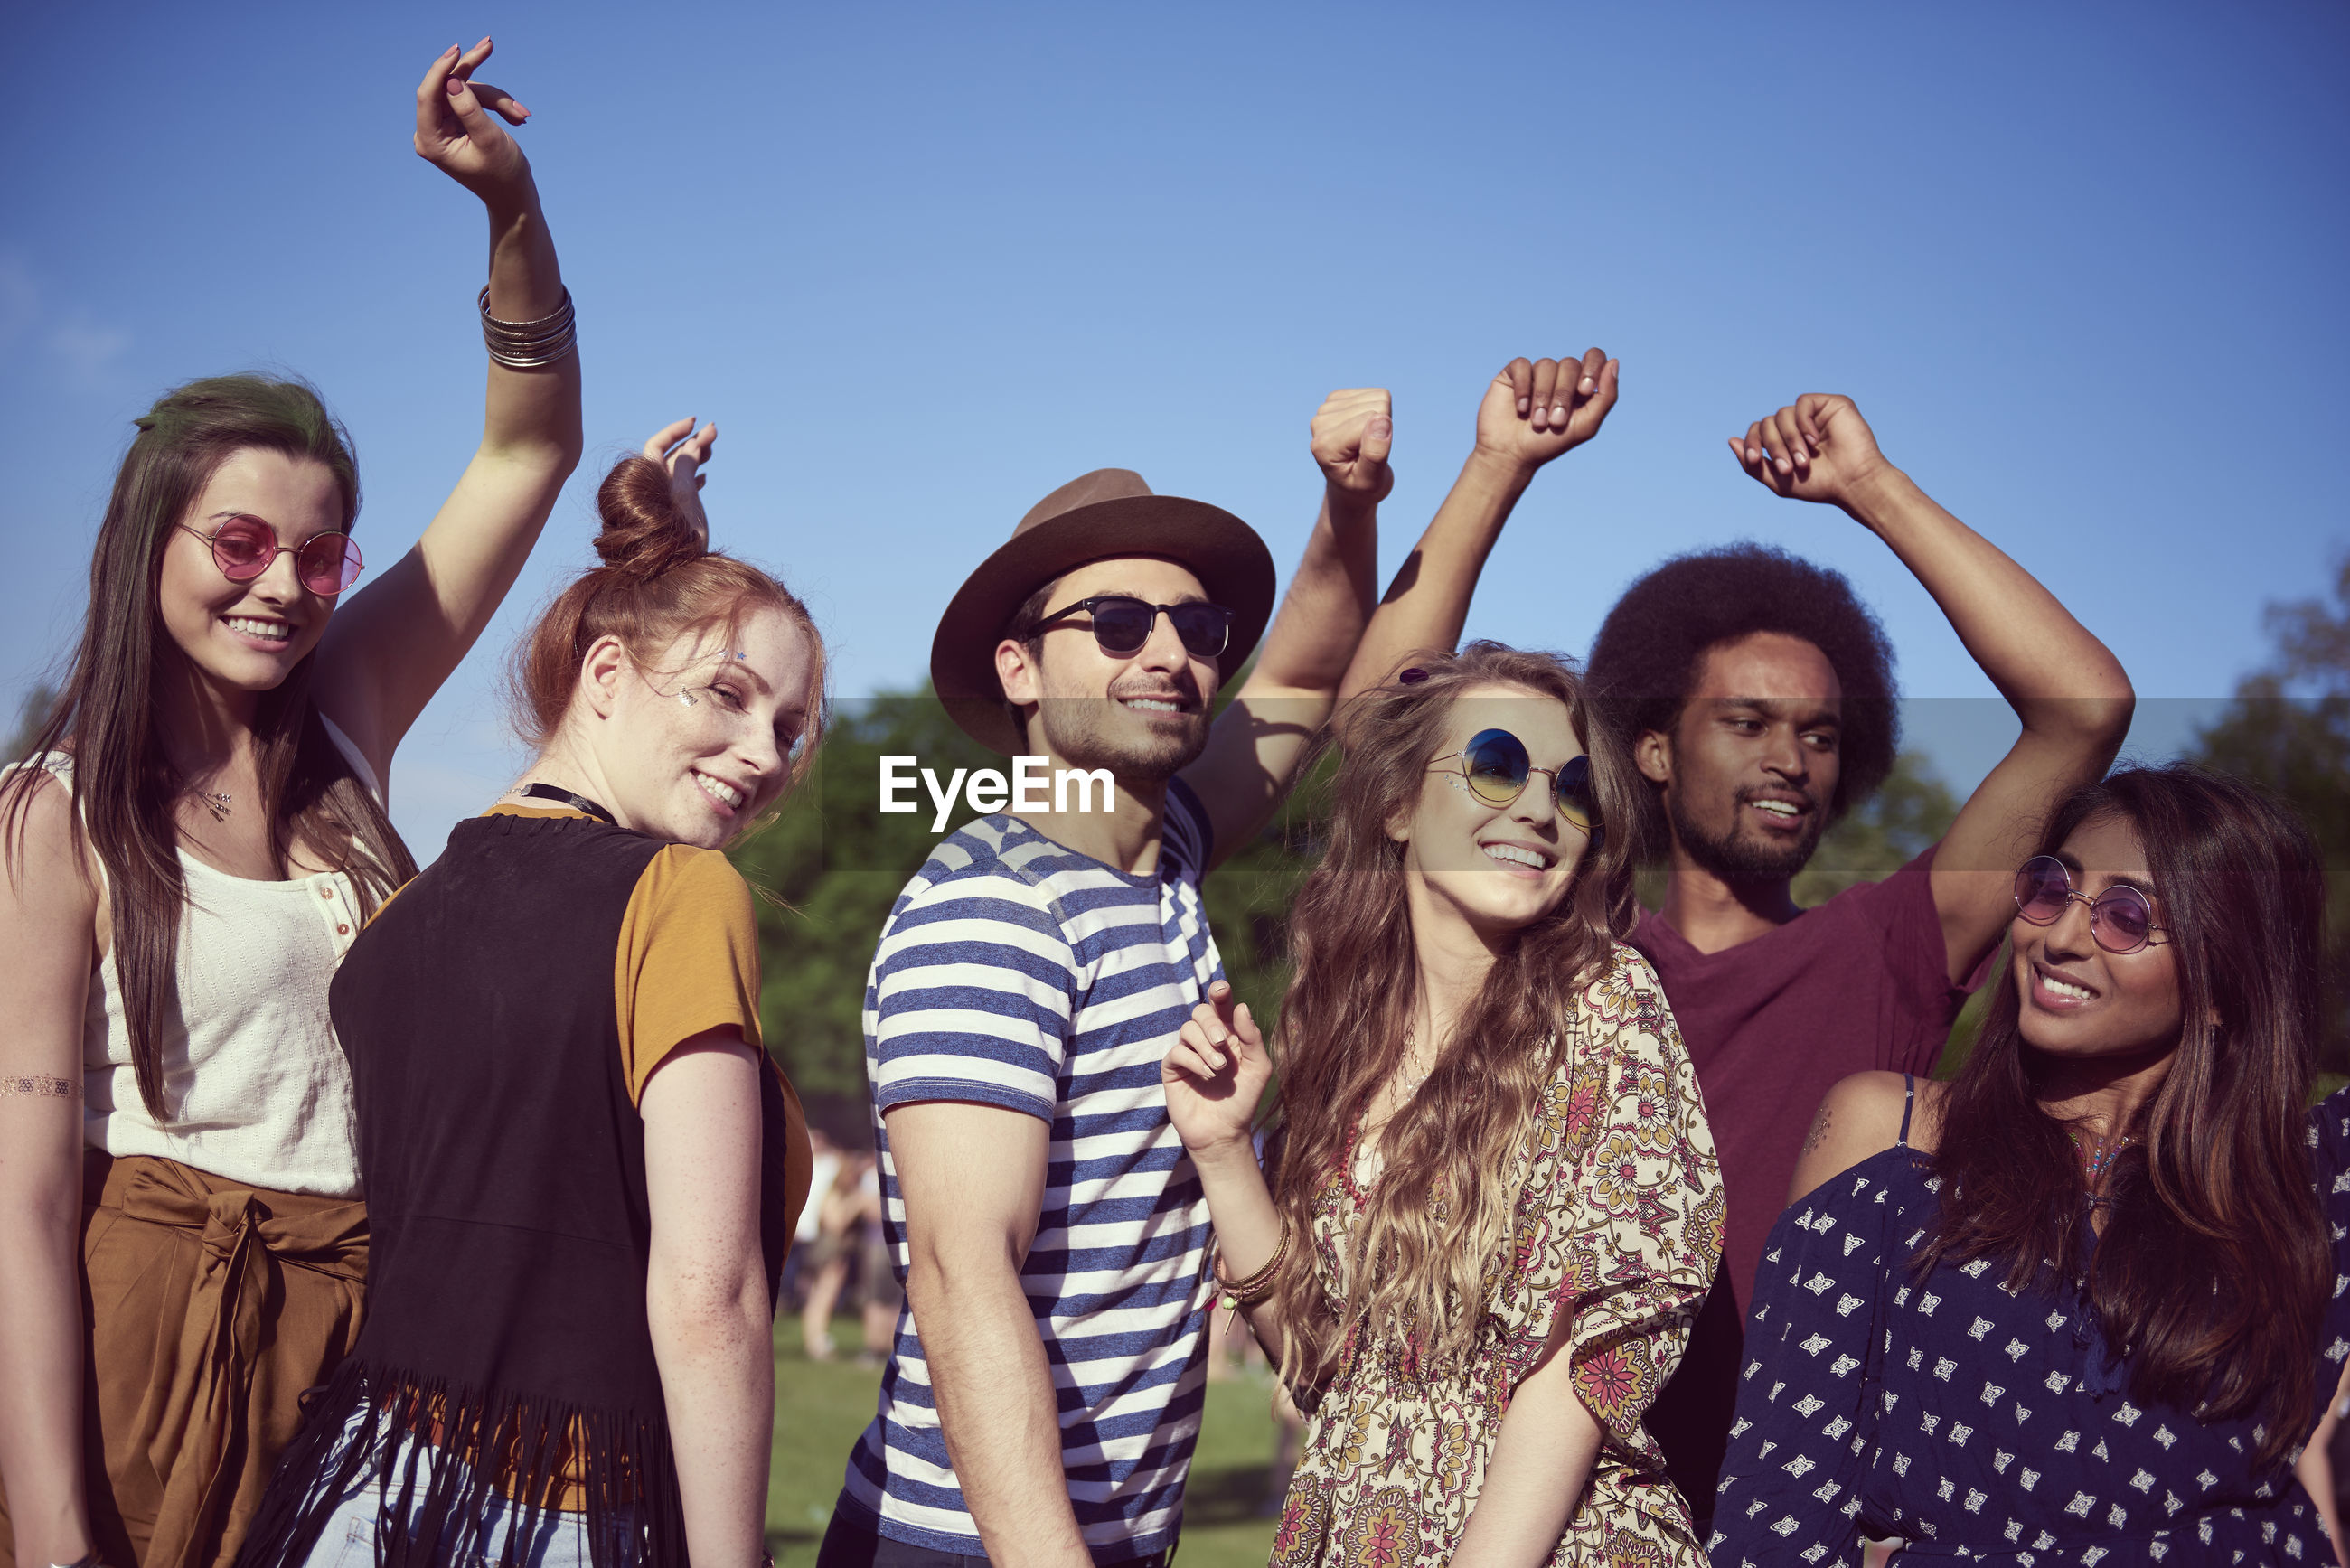 Group of people at party during sunny day